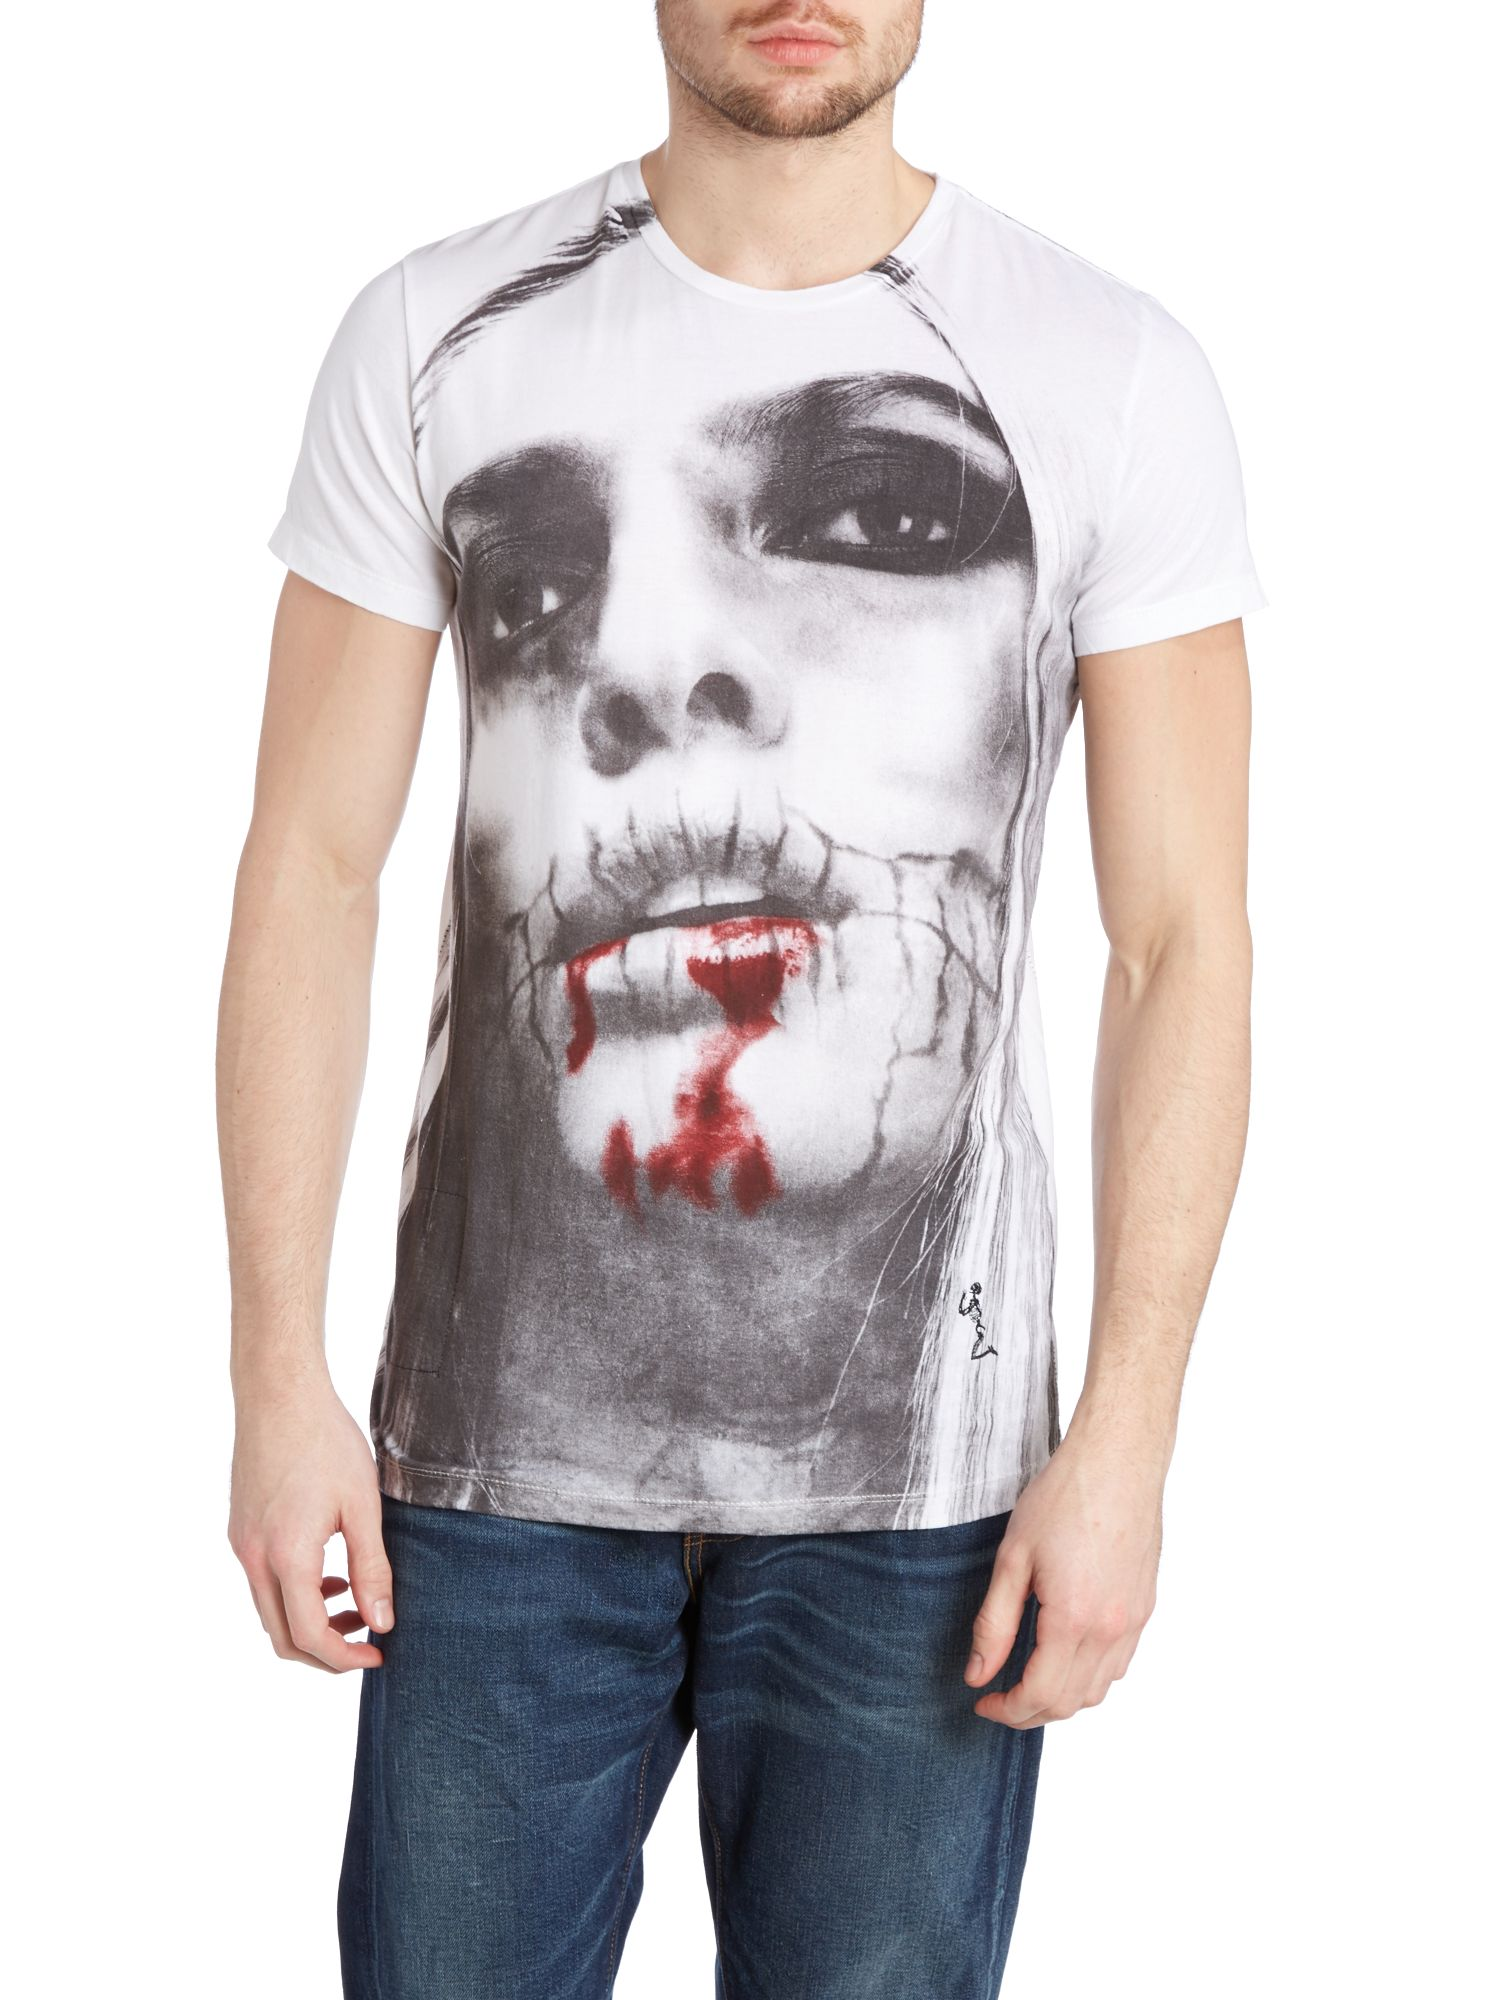 Girl with blood t shirt